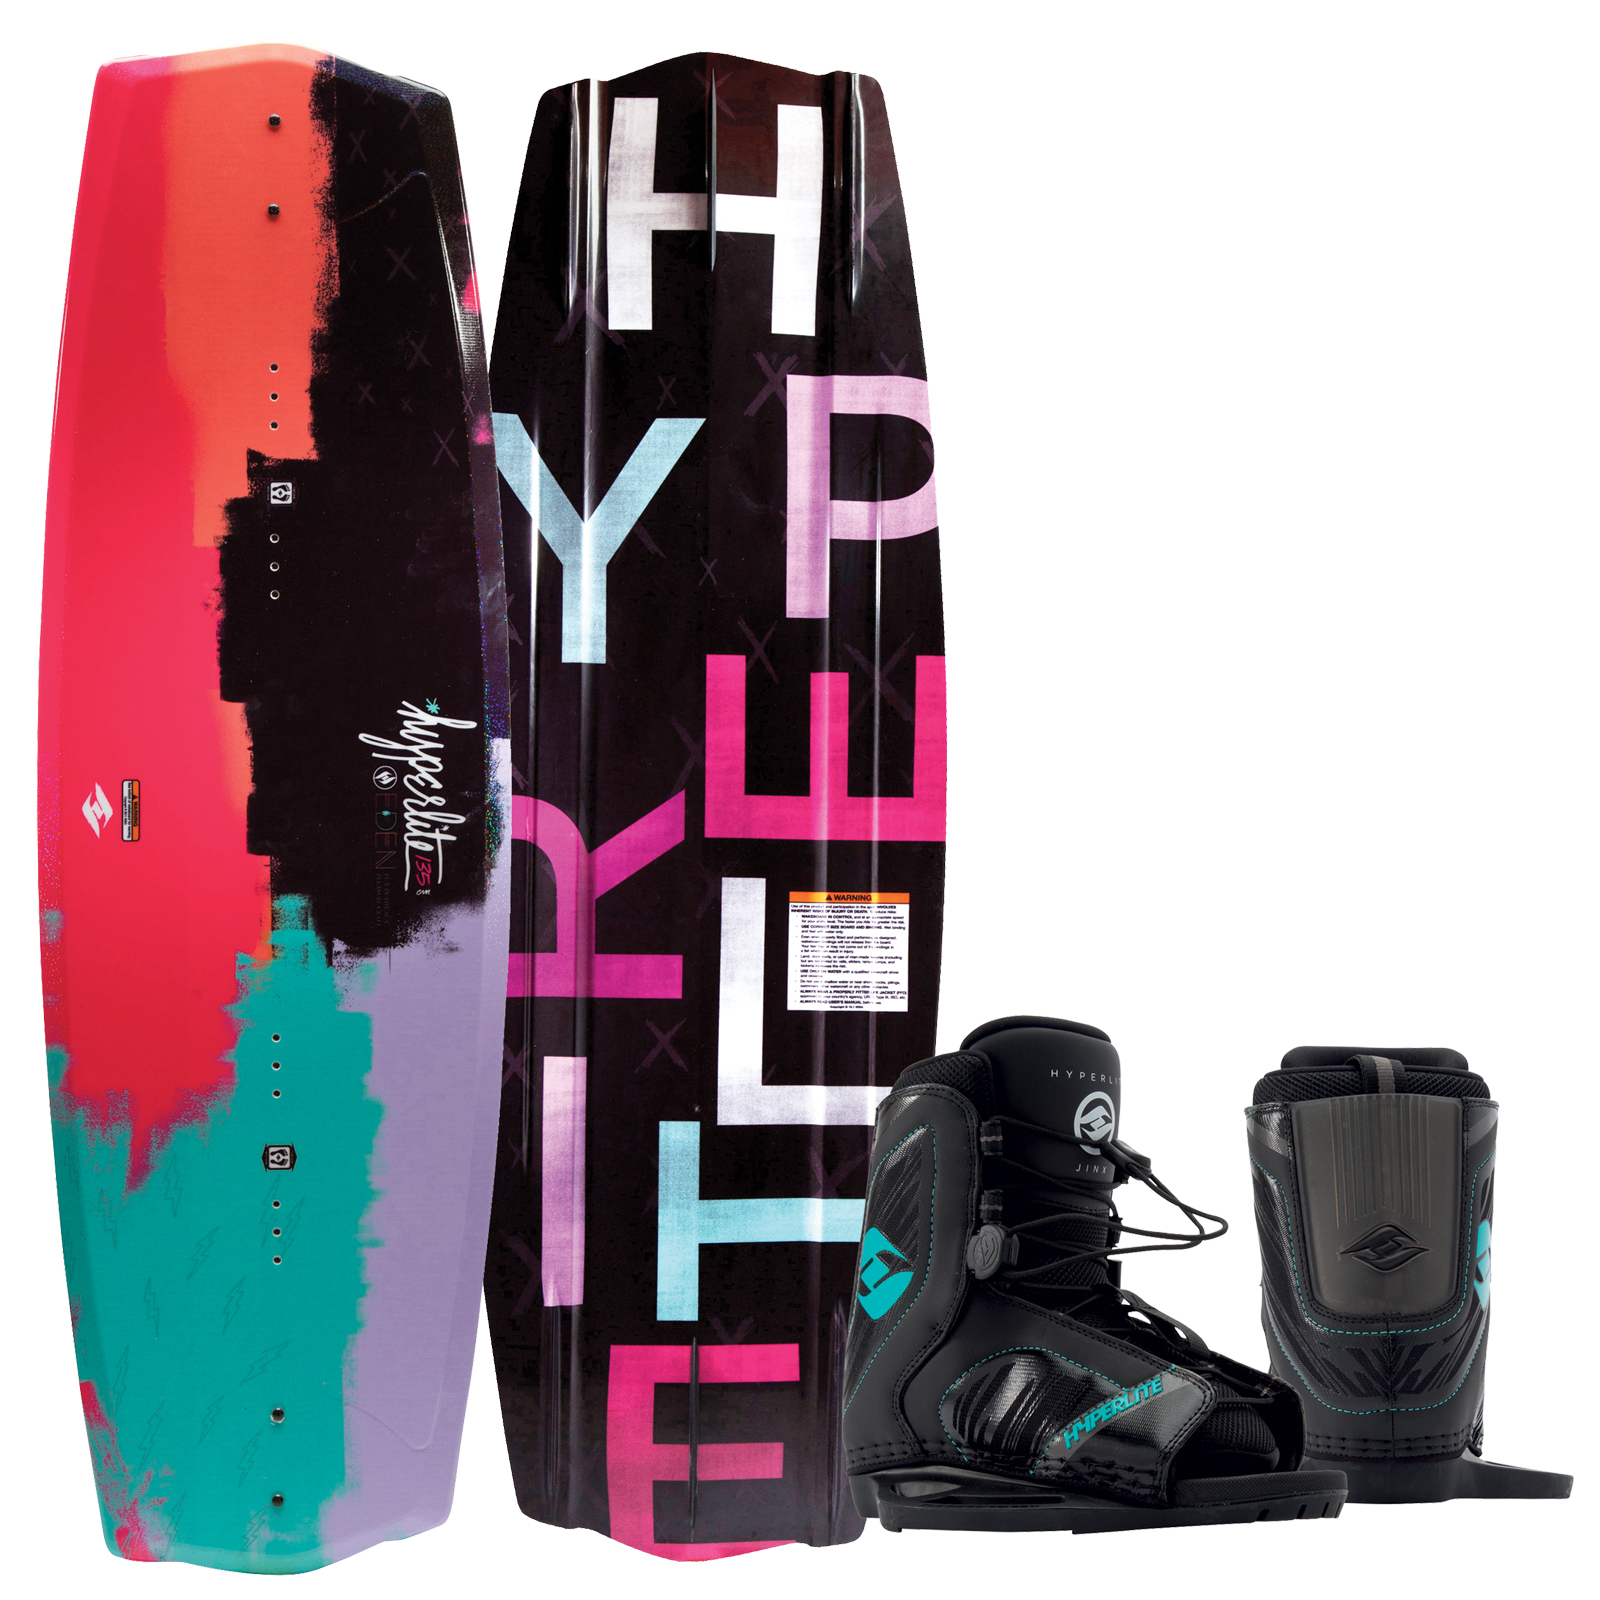 EDEN 2.0 125 JR. W/JINX GIRLS EU 29-32.5/US K12/Y2 PACKAGE HYPERLITE 2017